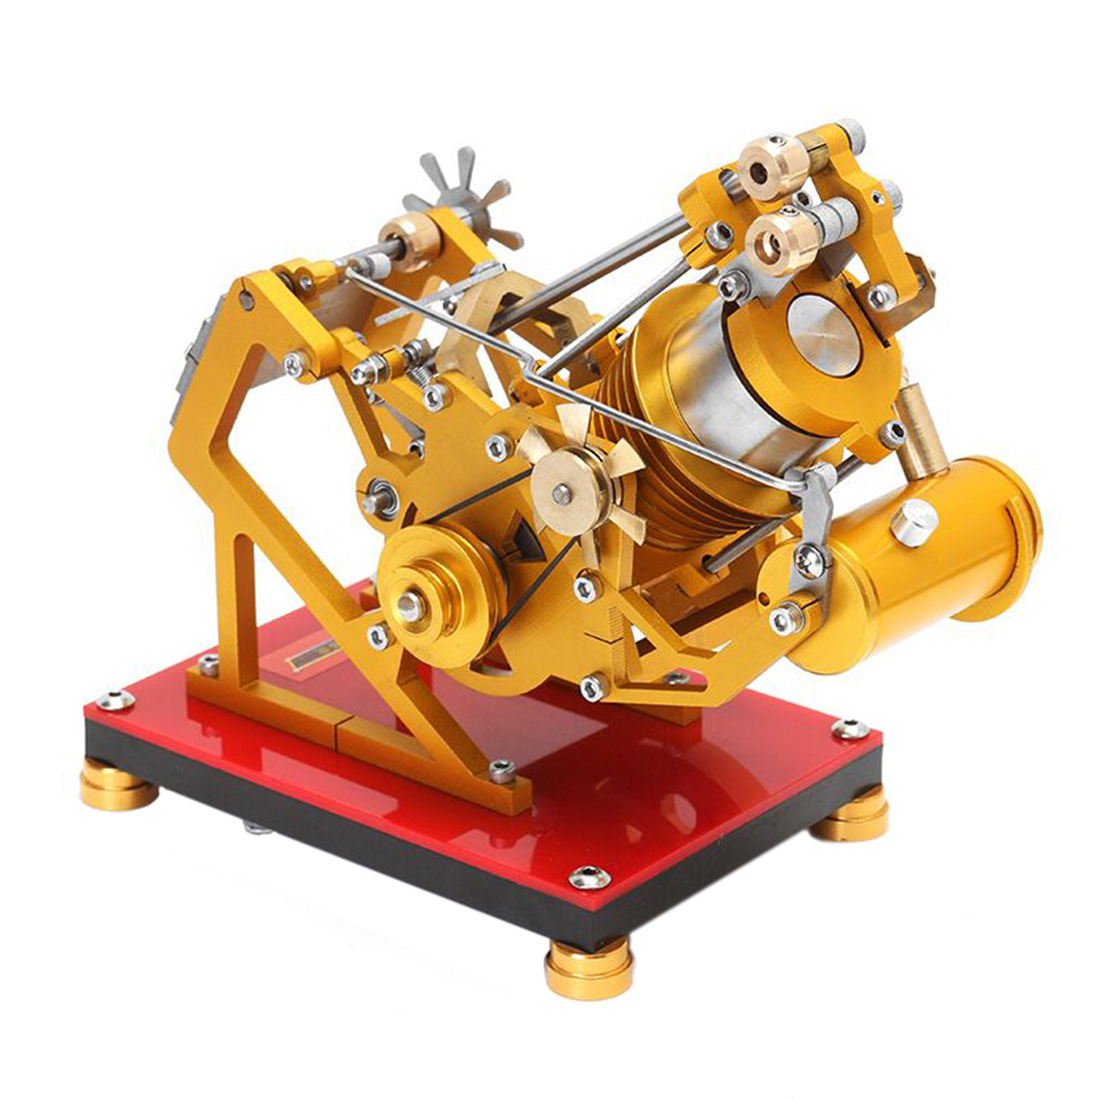 All-metal Suction Type and Vacuum Stirling Engine Model for Children  Educational Steam Stem Toys 2019 High Quality